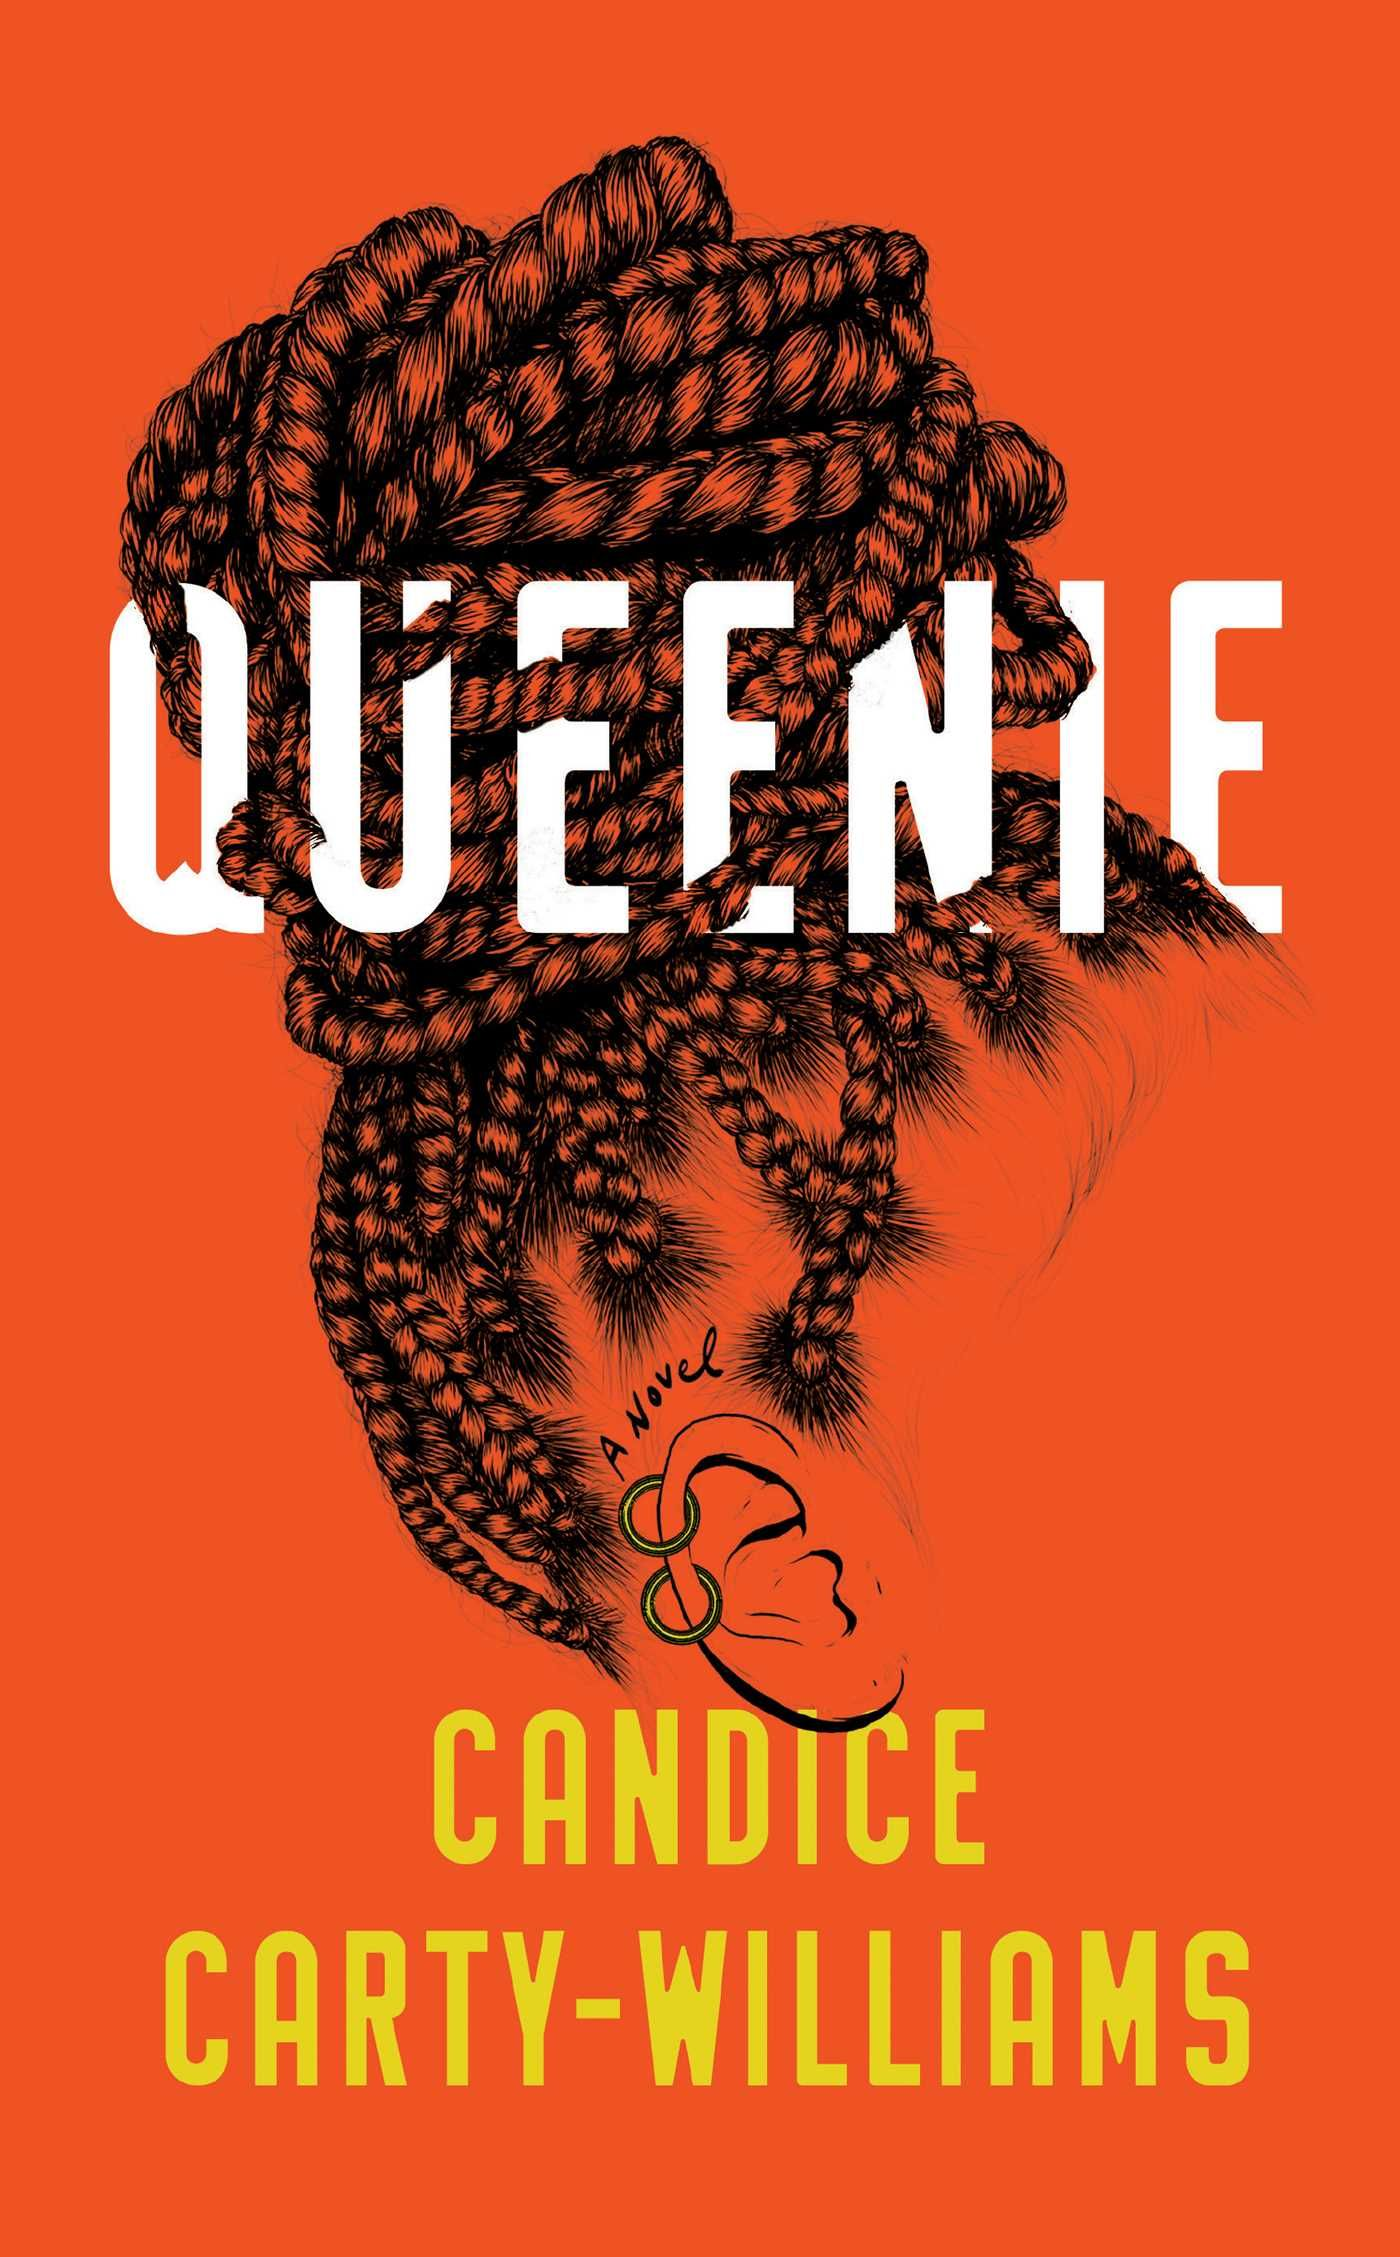 "Queenie by Candice Carty-Williams - Bridget Jones's Diary meets Americanah in this disarmingly honest, boldly political, and truly inclusive novel that will speak to anyone who has gone looking for love and found something very different in its place.Queenie Jenkins is a 25-year-old Jamaican British woman living in London, straddling two cultures and slotting neatly into neither. She works at a national newspaper, where she's constantly forced to compare herself to her white middle class peers. After a messy break up from her long-term white boyfriend, Queenie seeks comfort in all the wrong places…including several hazardous men who do a good job of occupying brain space and a bad job of affirming self-worth.As Queenie careens from one questionable decision to another, she finds herself wondering, ""What are you doing? Why are you doing it? Who do you want to be?""—all of the questions today's woman must face in a world trying to answer them for her.With ""fresh and honest"" (Jojo Moyes) prose, Queenie is a remarkably relatable exploration of what it means to be a modern woman searching for meaning in today's world."